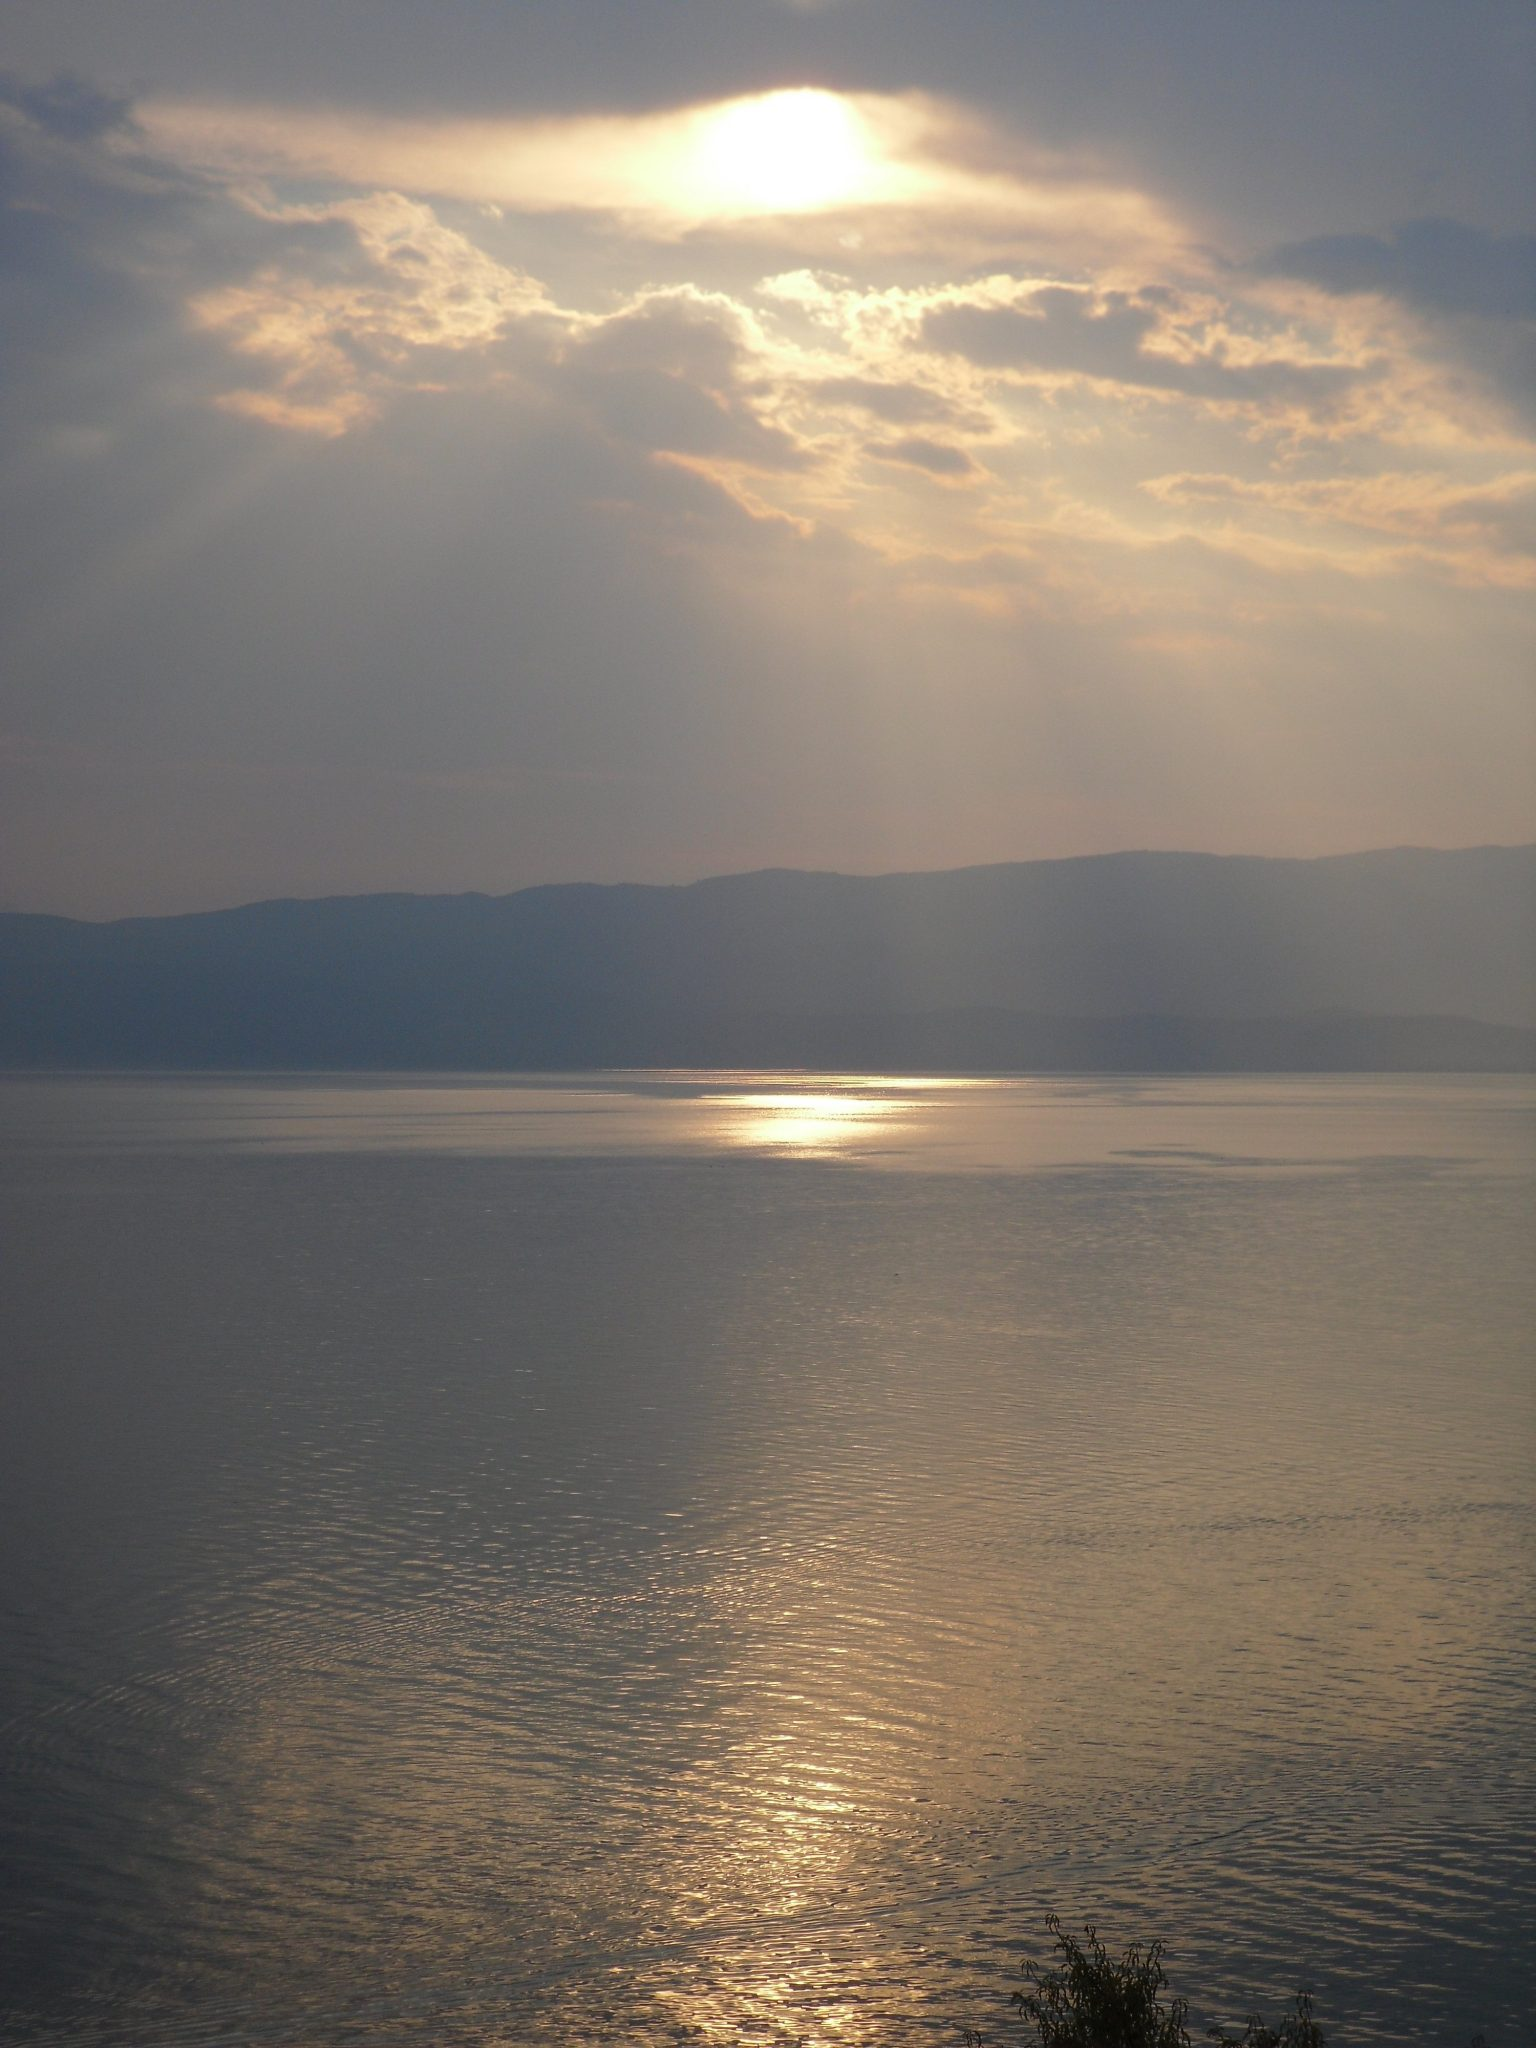 Ohrid: the jewel of Macedonia